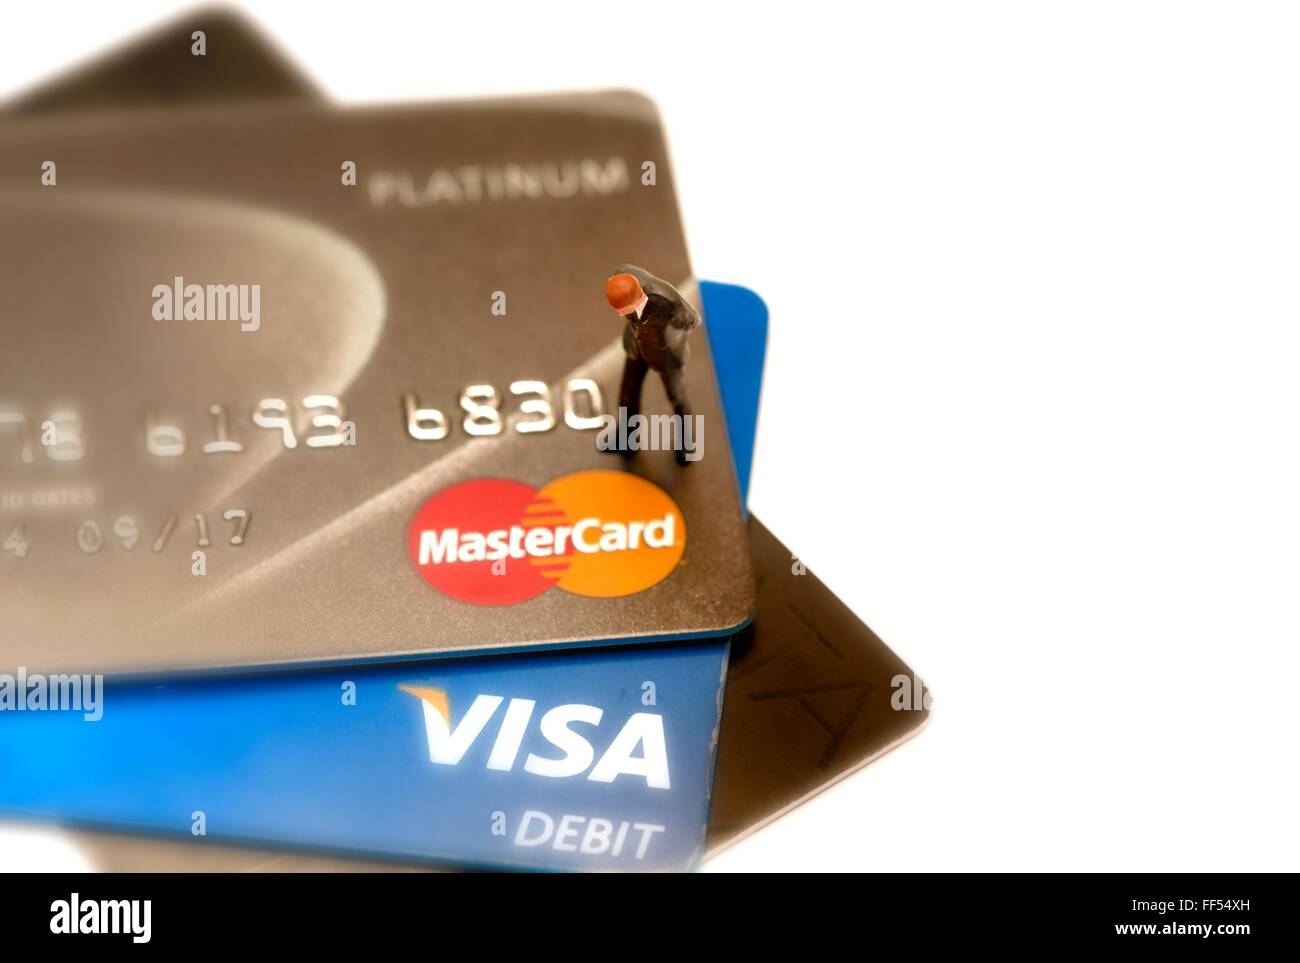 A Debit and credit card close up with a miniature figurine standing looking down - Stock Image